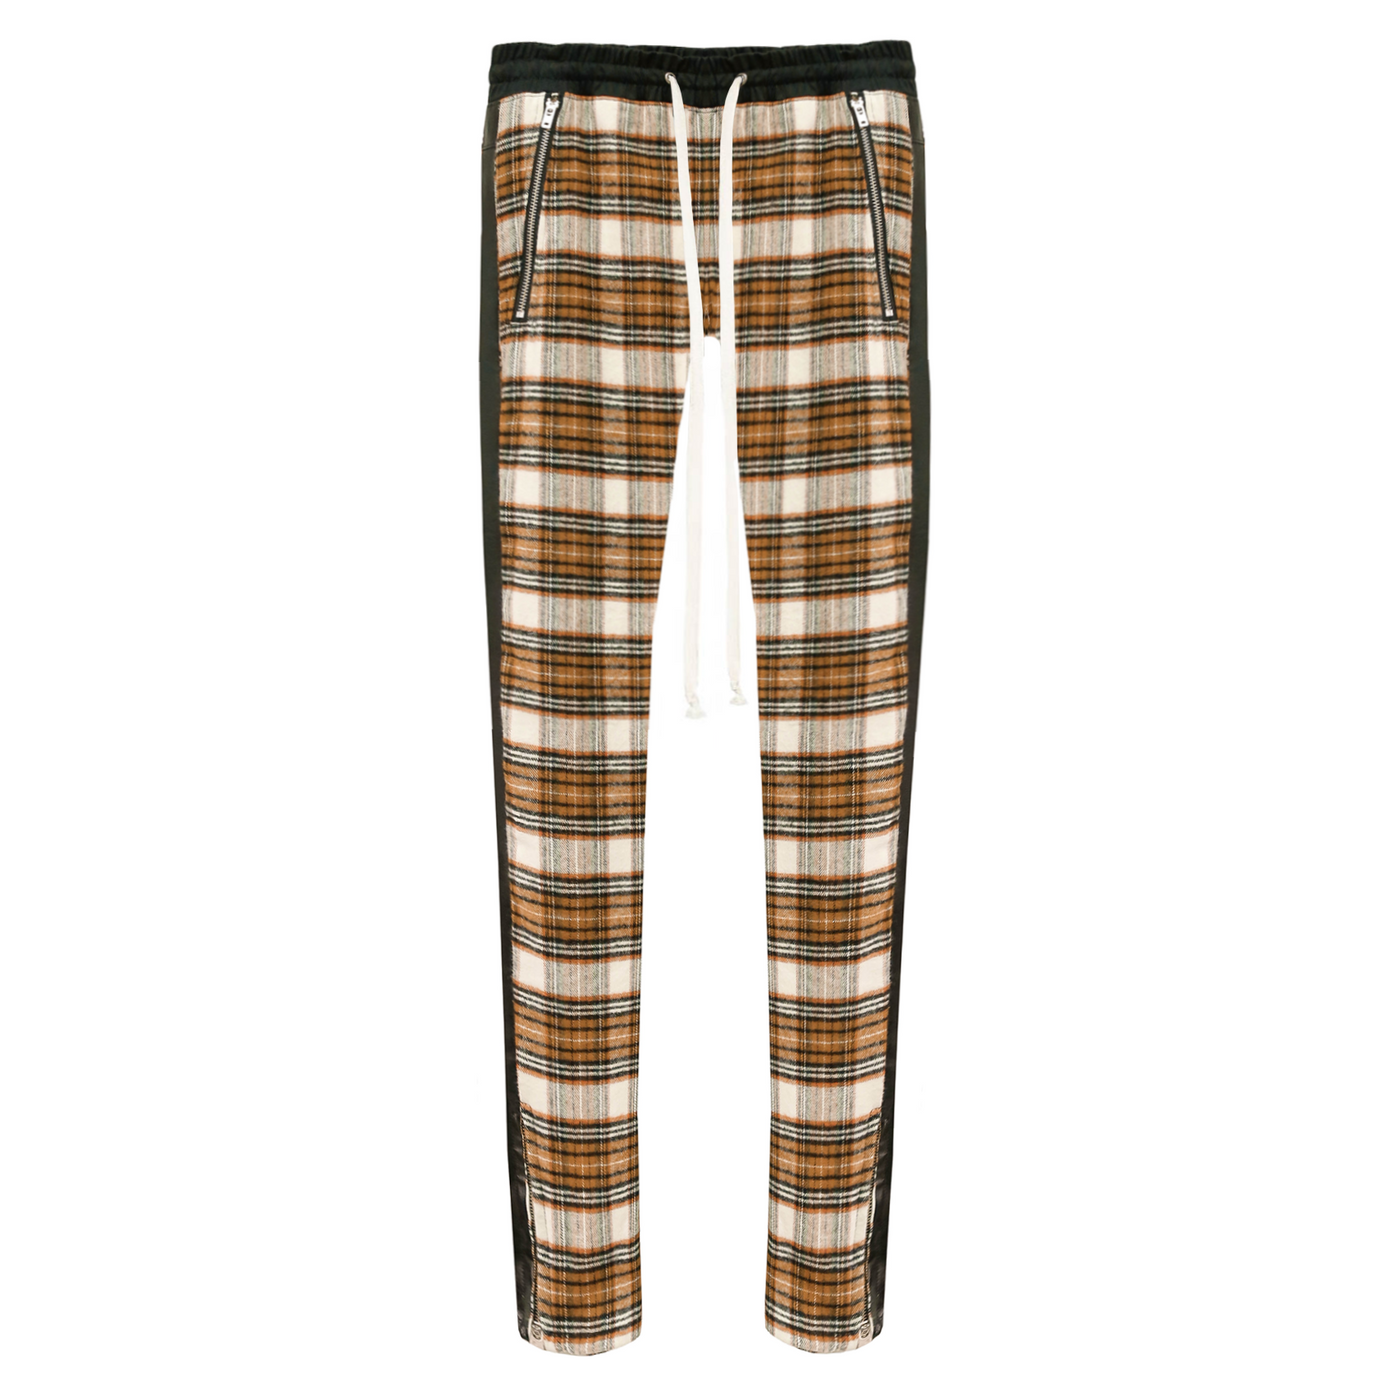 THE LIV PLAID DRAWSTRING PANTS